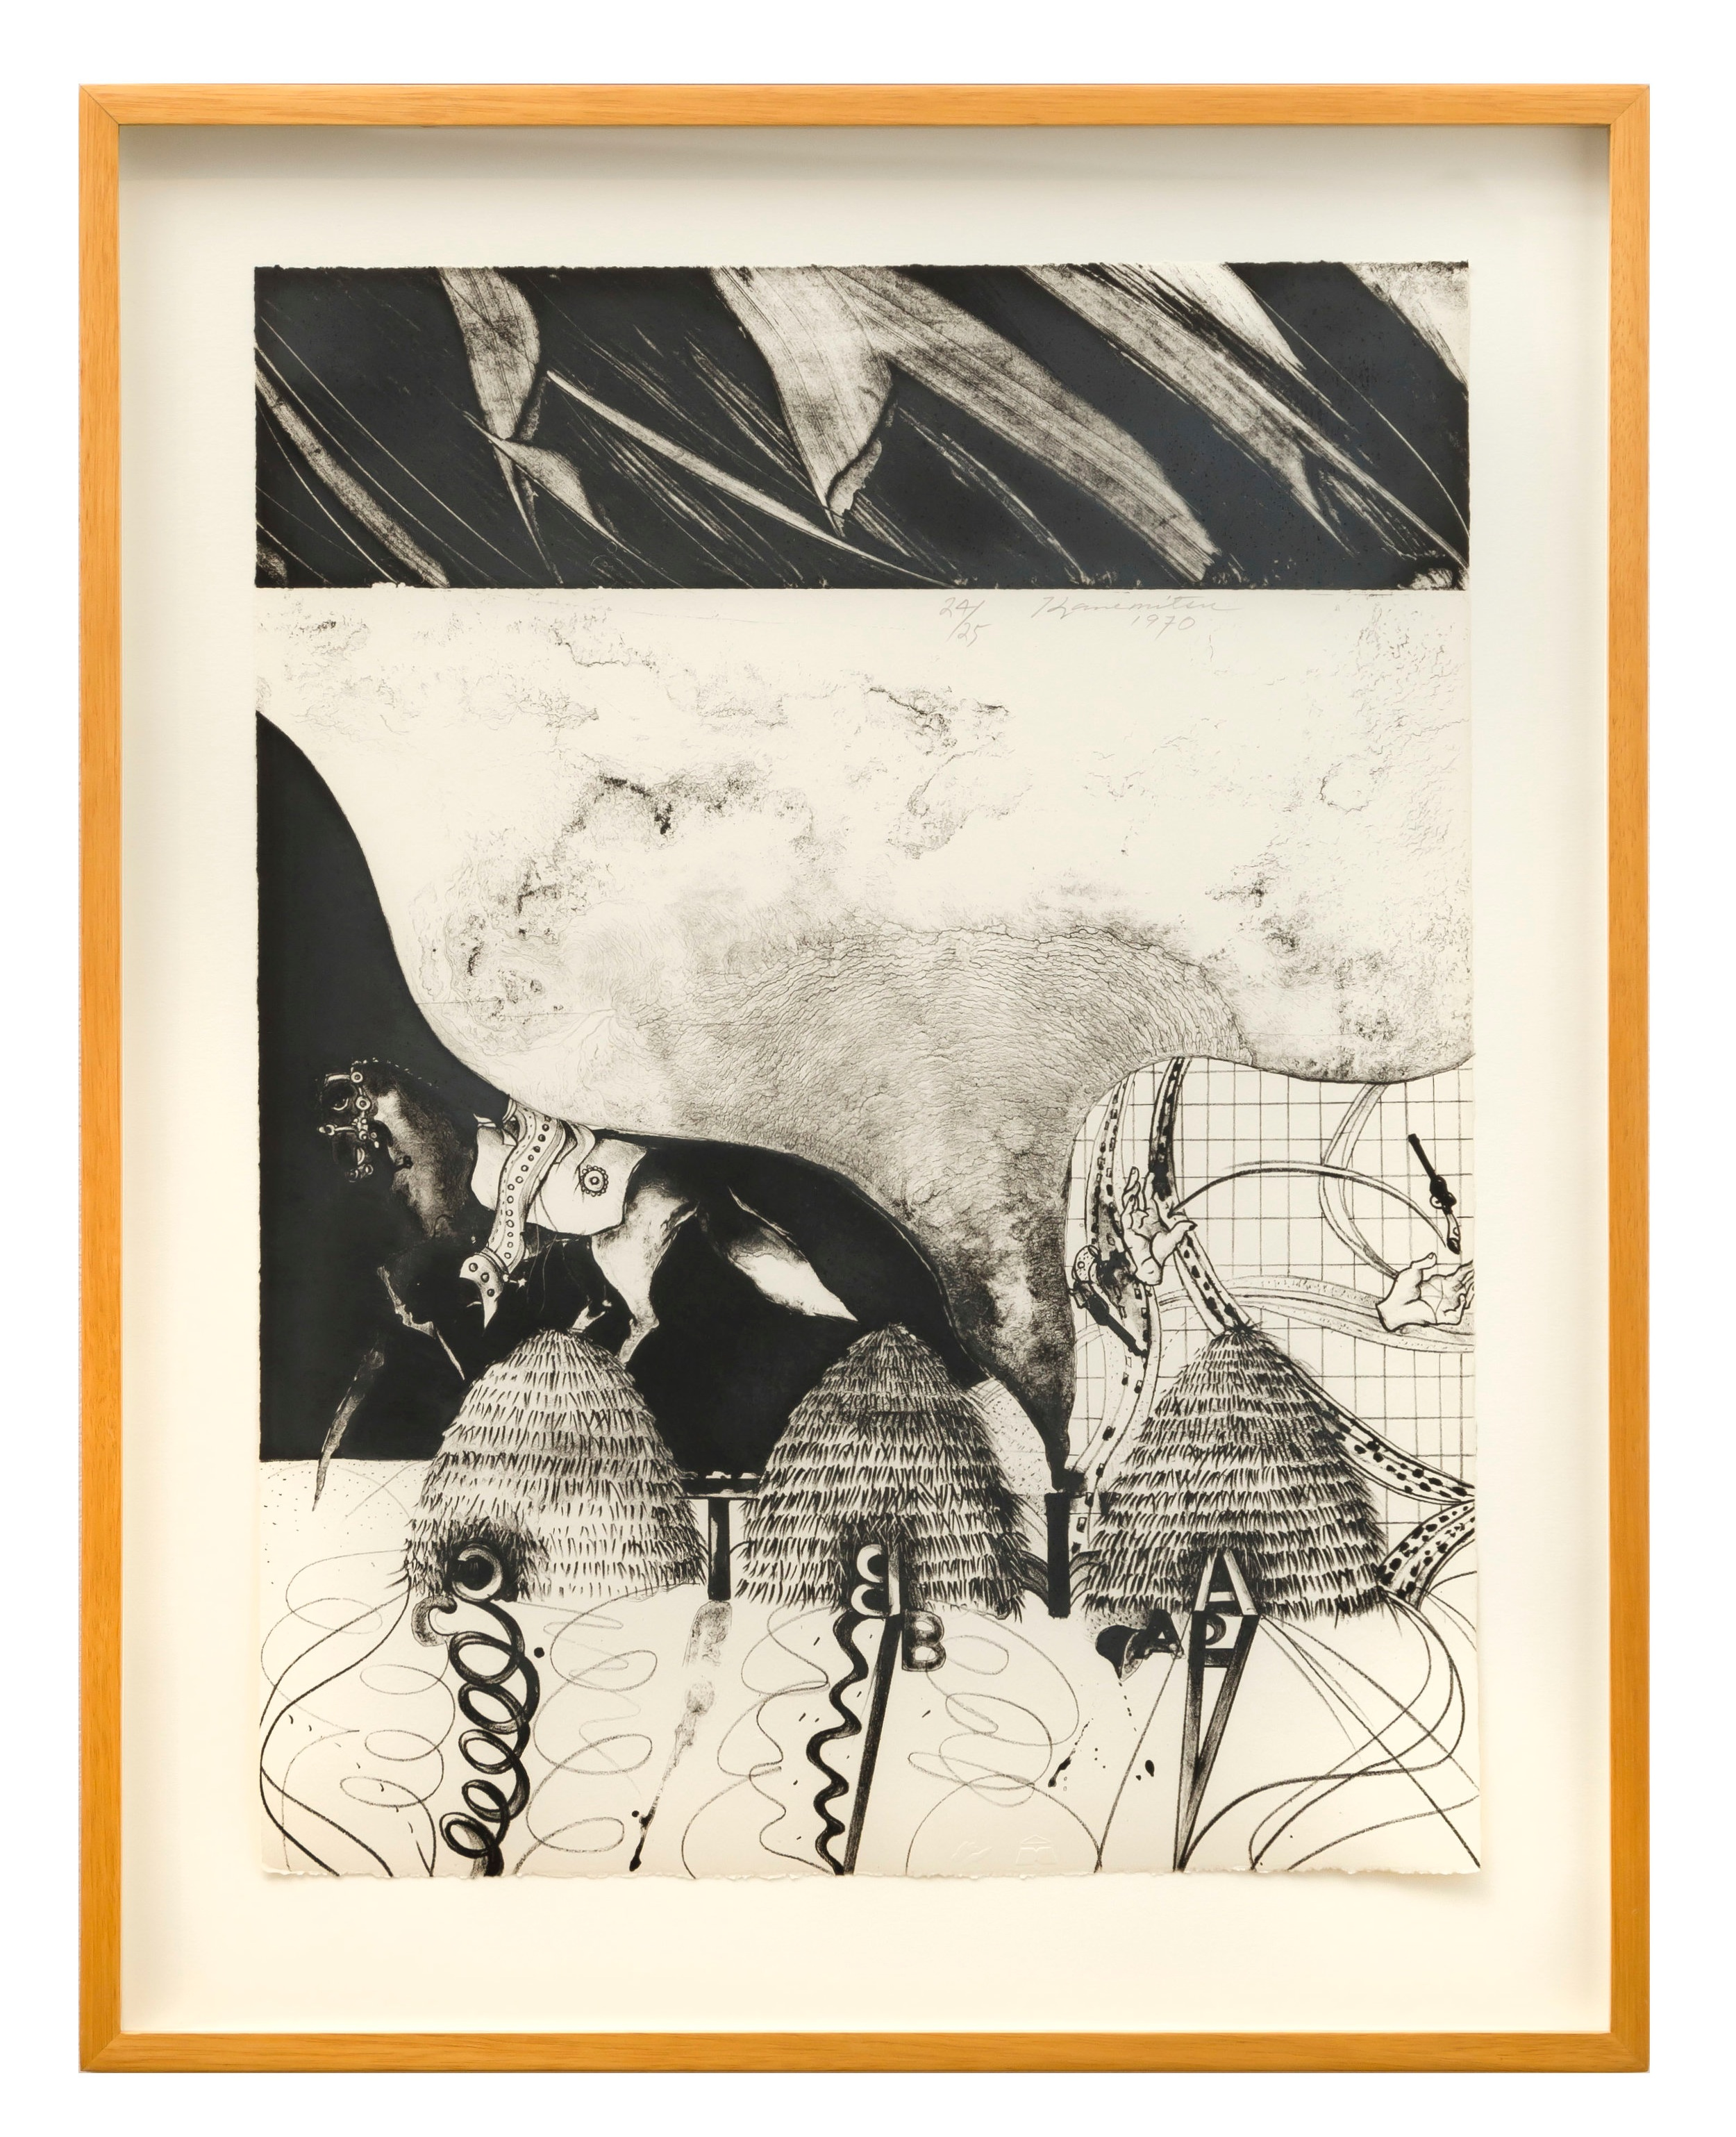 Metamorphosis L.A. II   1970  lithograph  20 x 15 inches, 50.8 38.1 centimeters